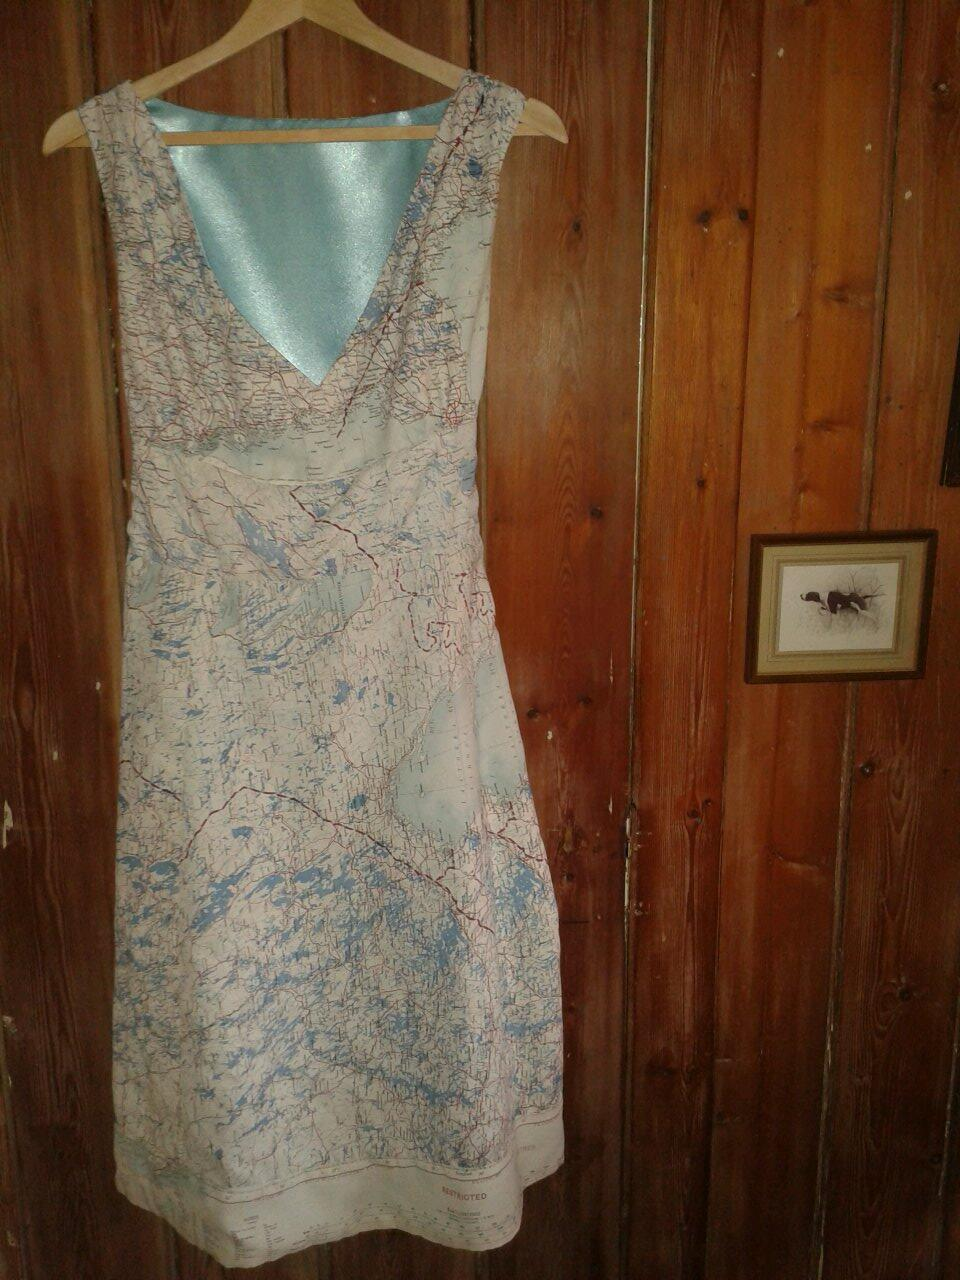 Dress made from escape and evasion maps by Home Front Vintage.jpg